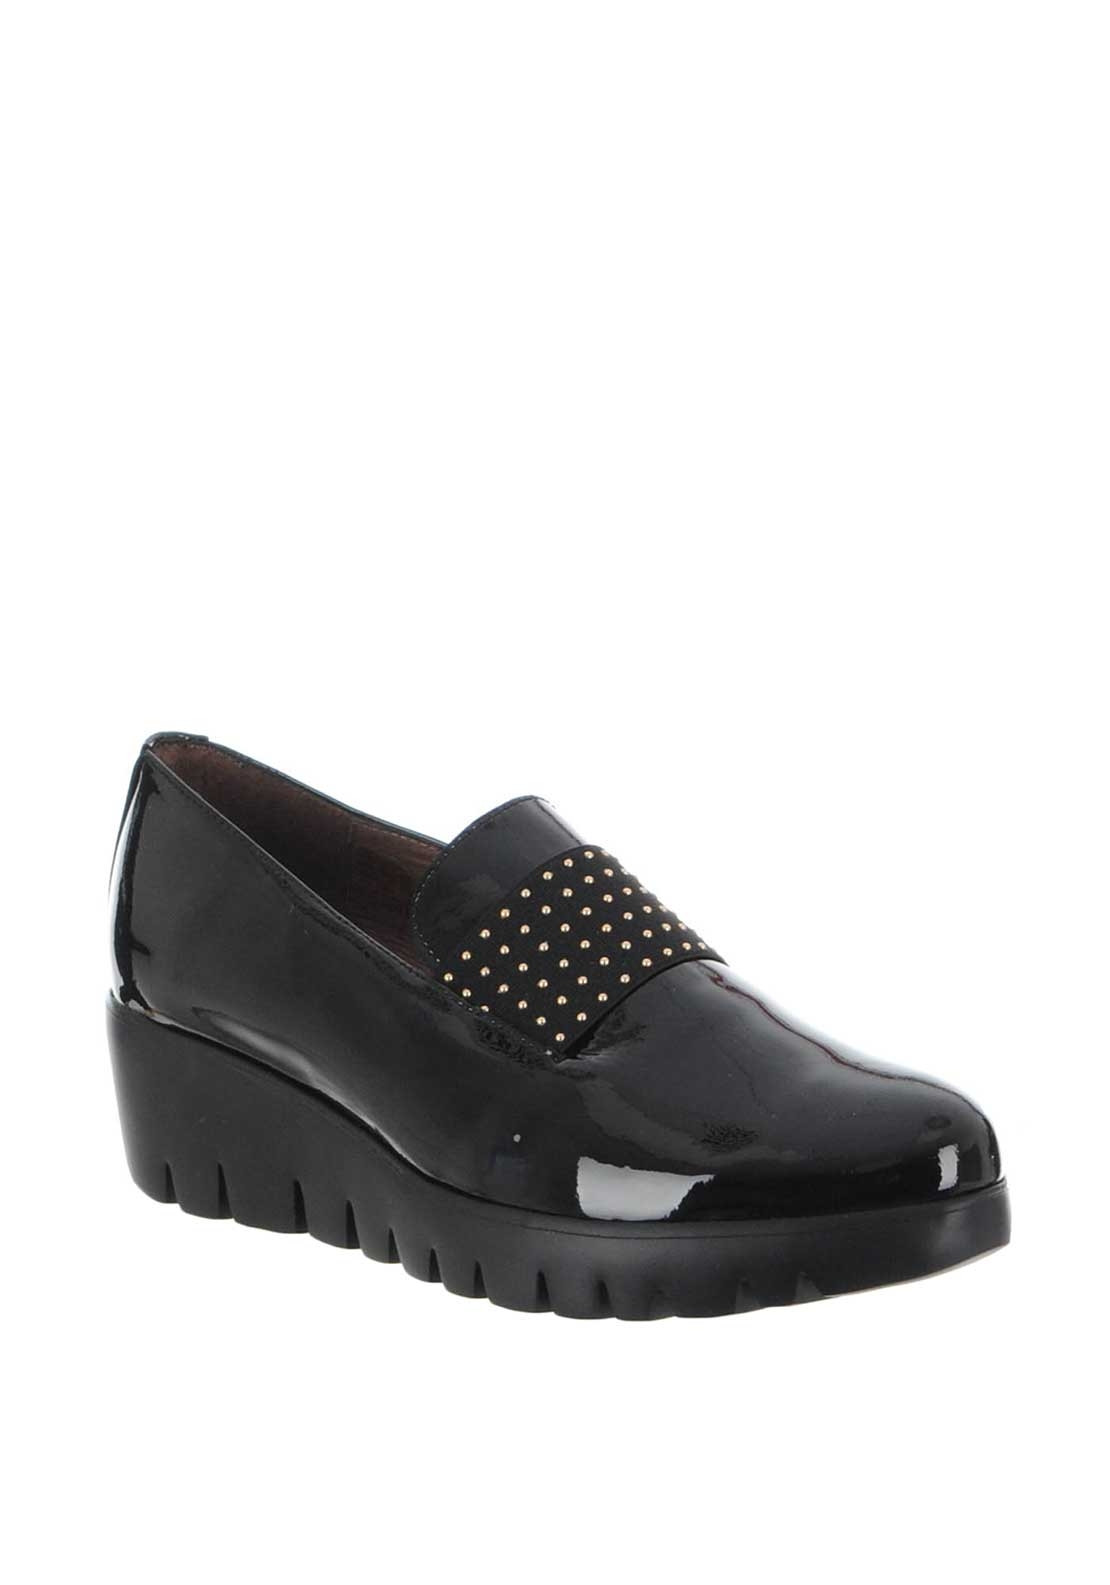 246454f1d94 Wonders Patent Leather Loafer Shoes